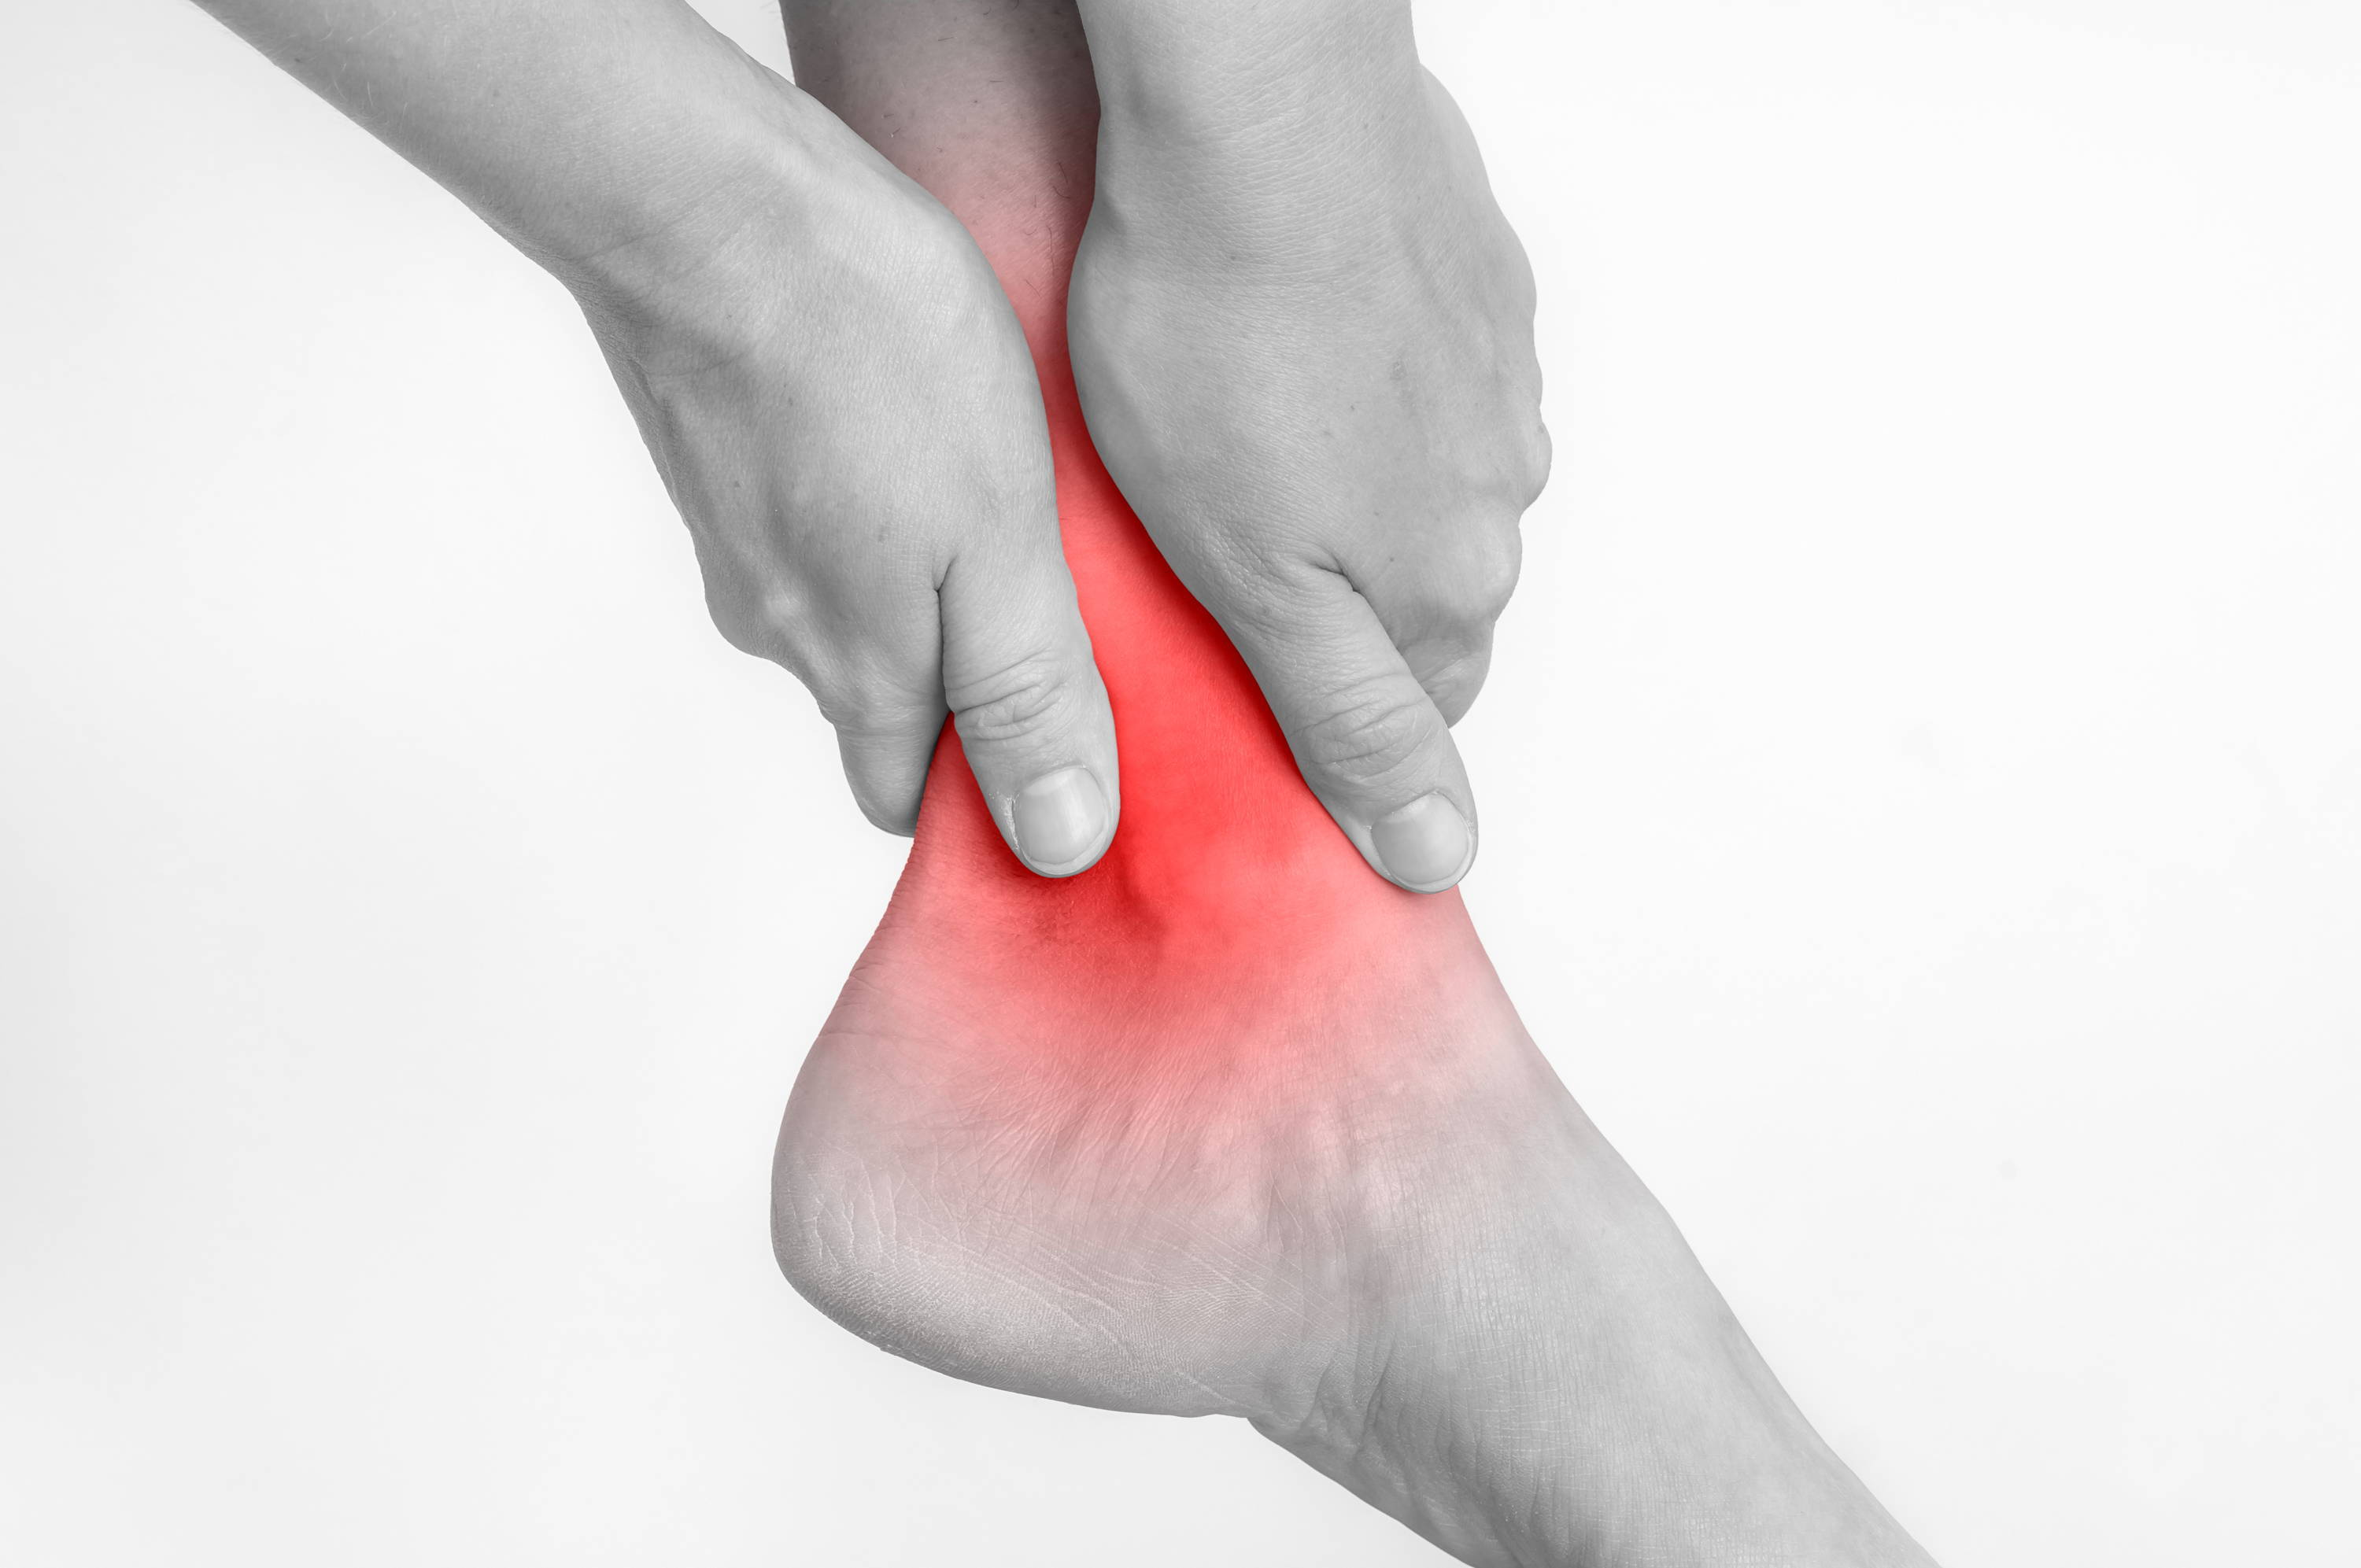 Causes of a sprained ankle